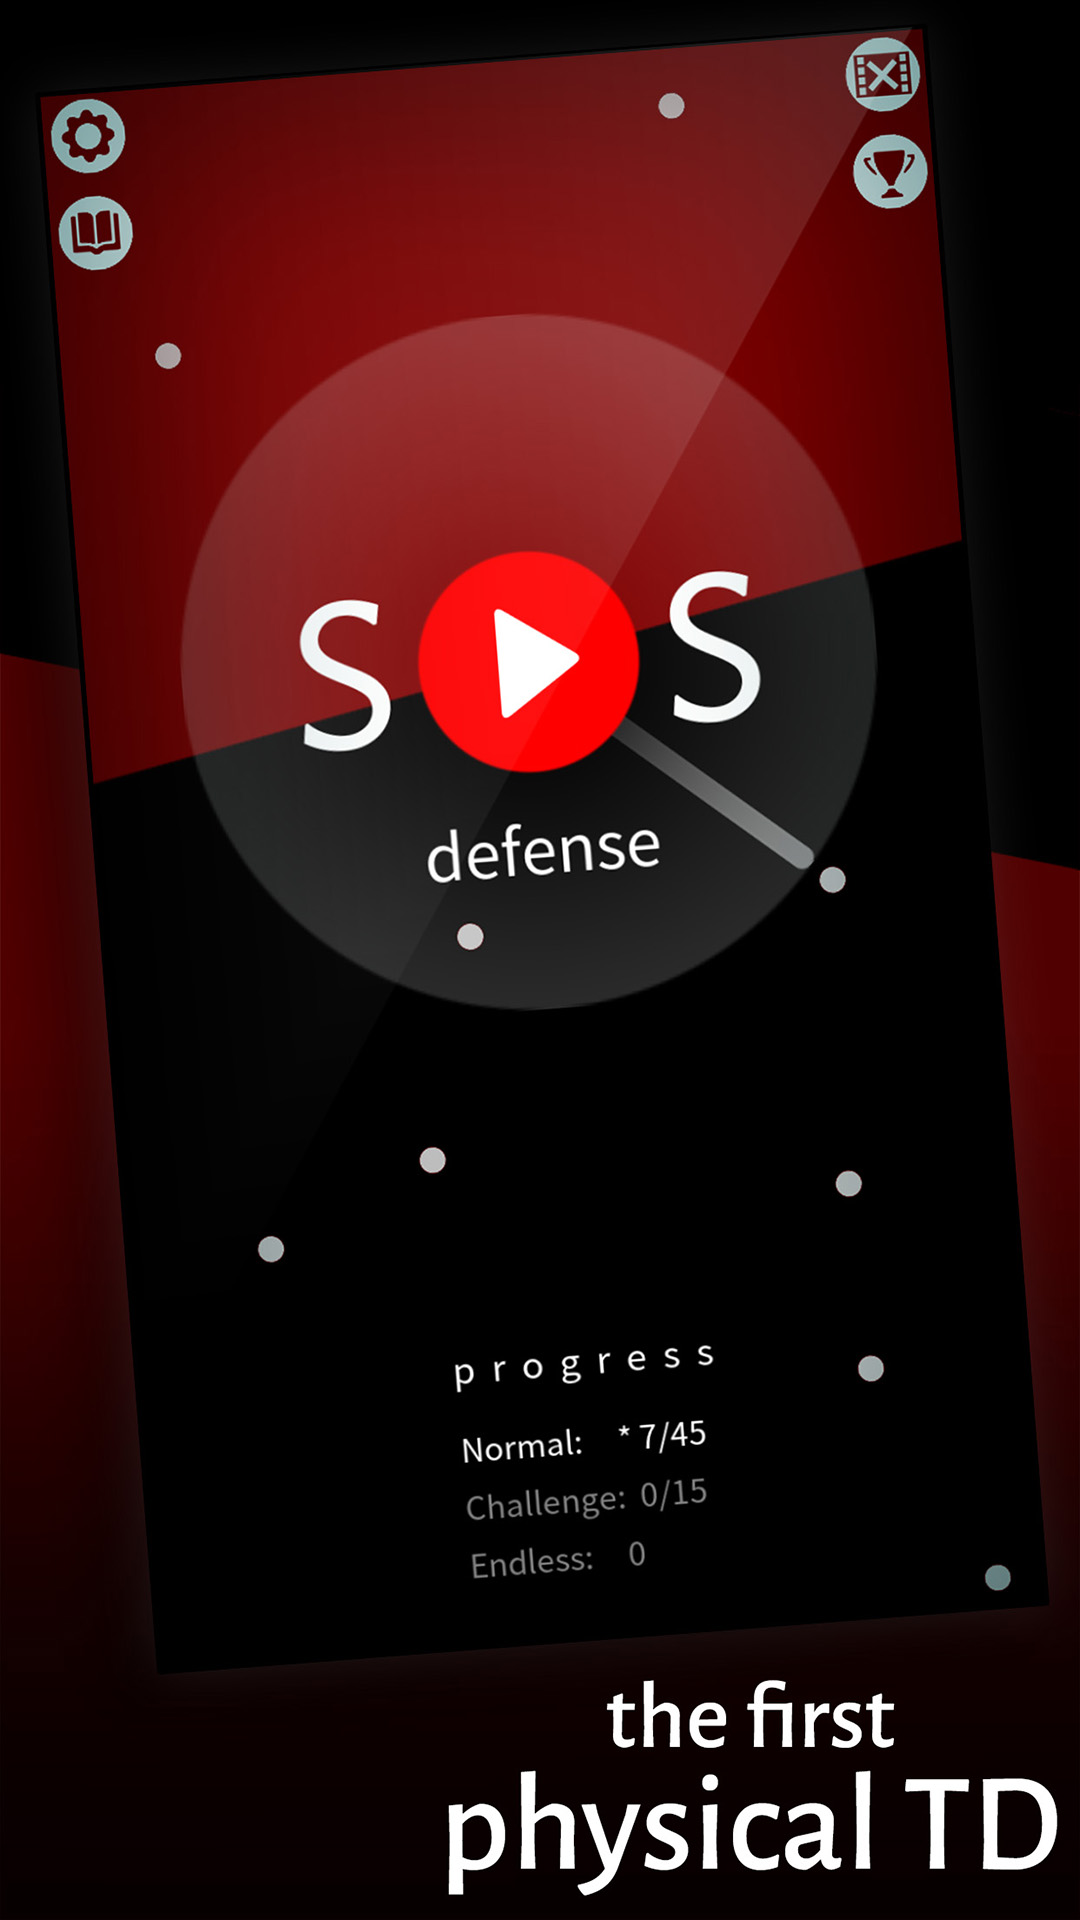 Amazon.com: SOS defense - the first physic TD!: Appstore for ...